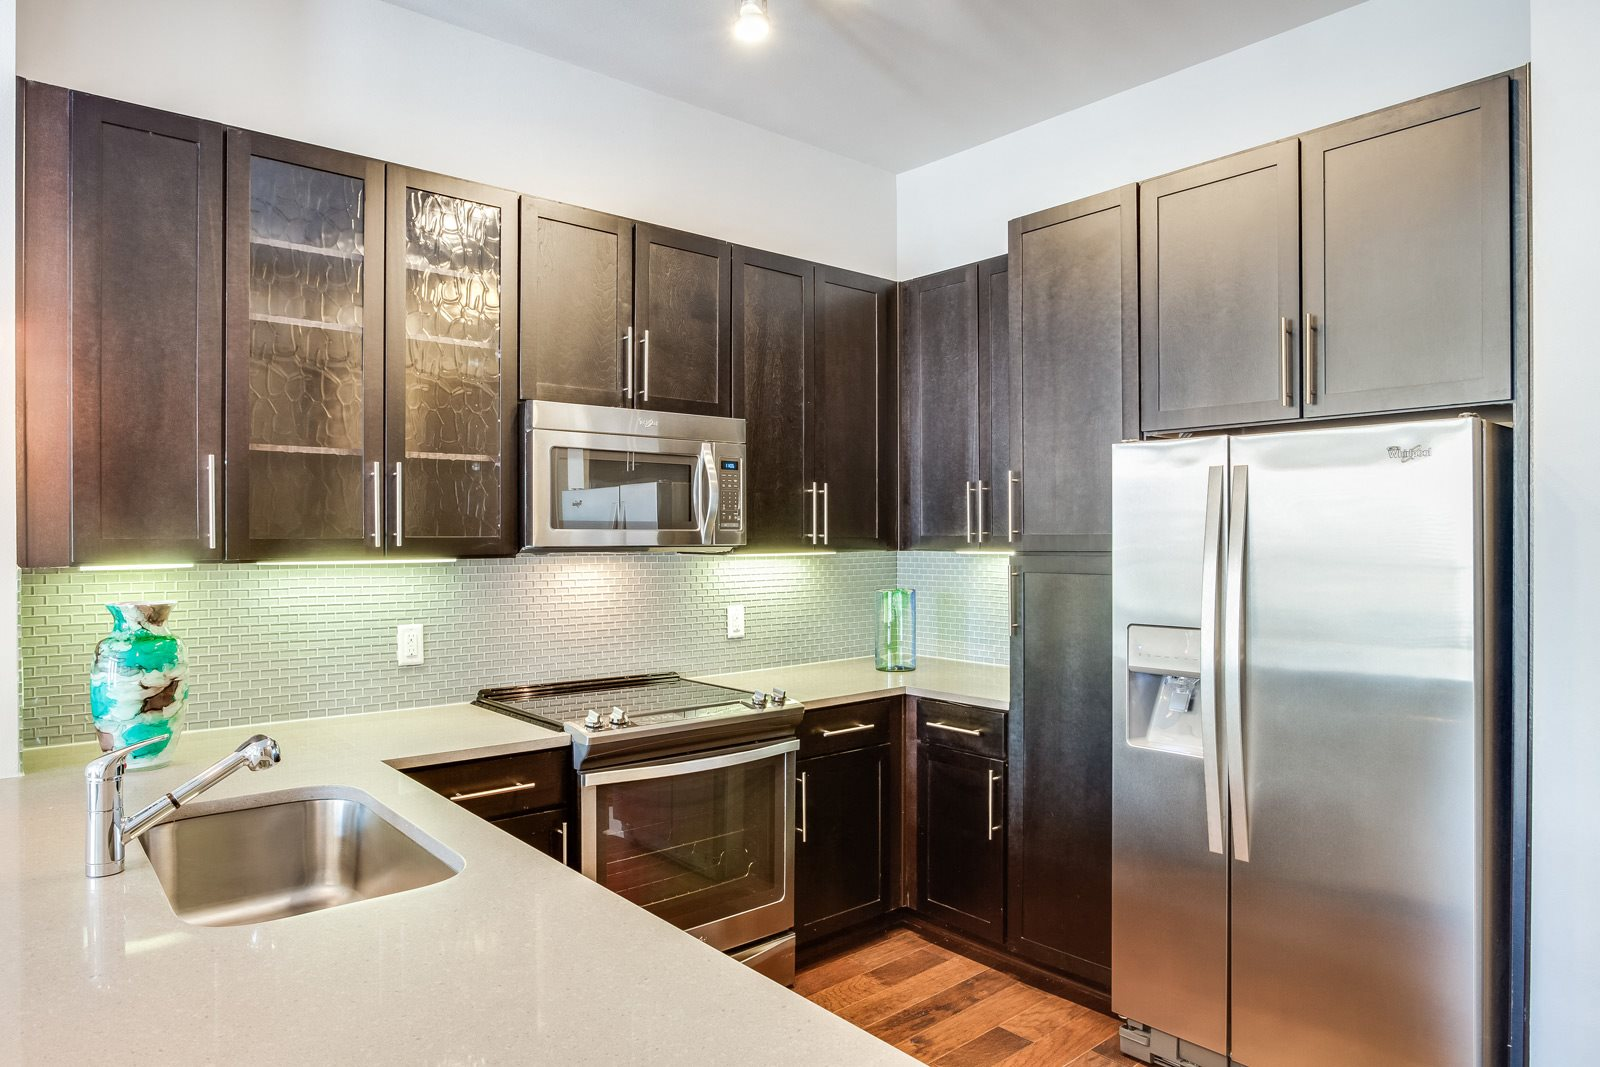 Upscale Stainless Steel Appliances at Windsor CityLine, Richardson, TX